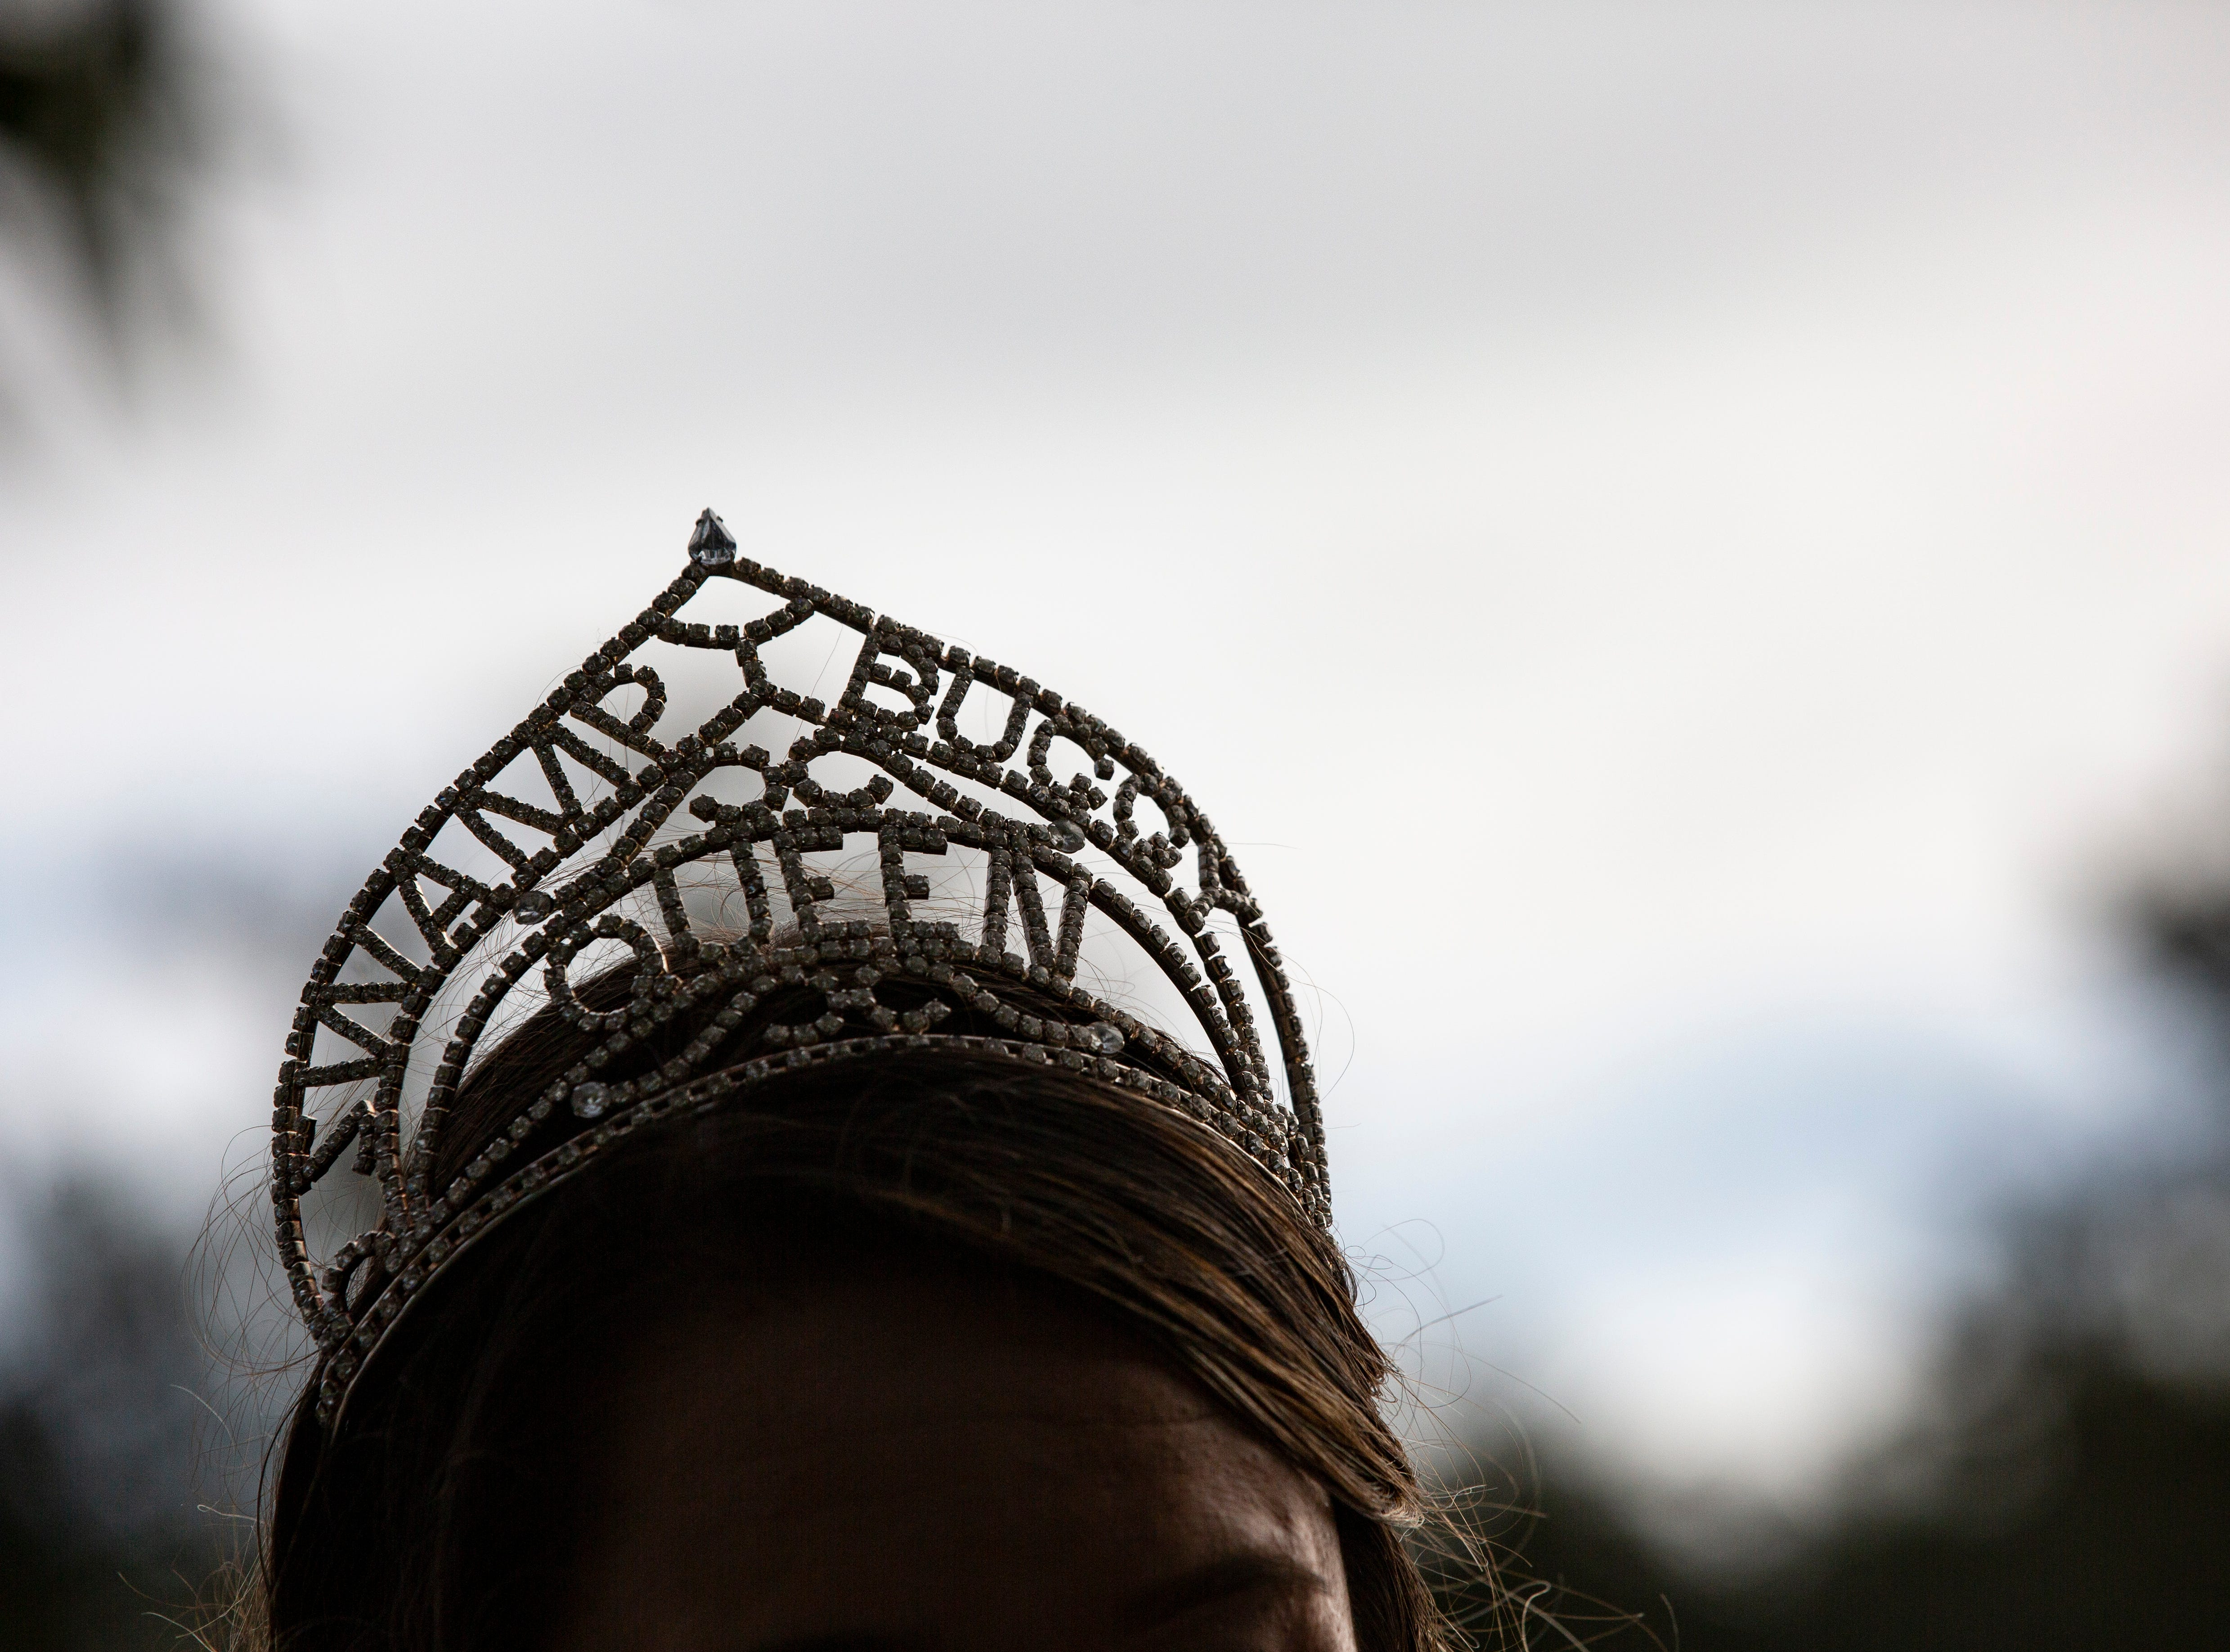 The 70th annual Swamp Buggy Parade on Saturday morning, Nov. 3, 2018, featured past Swamp Buggy Queens. The first queen was crowned in 1950.